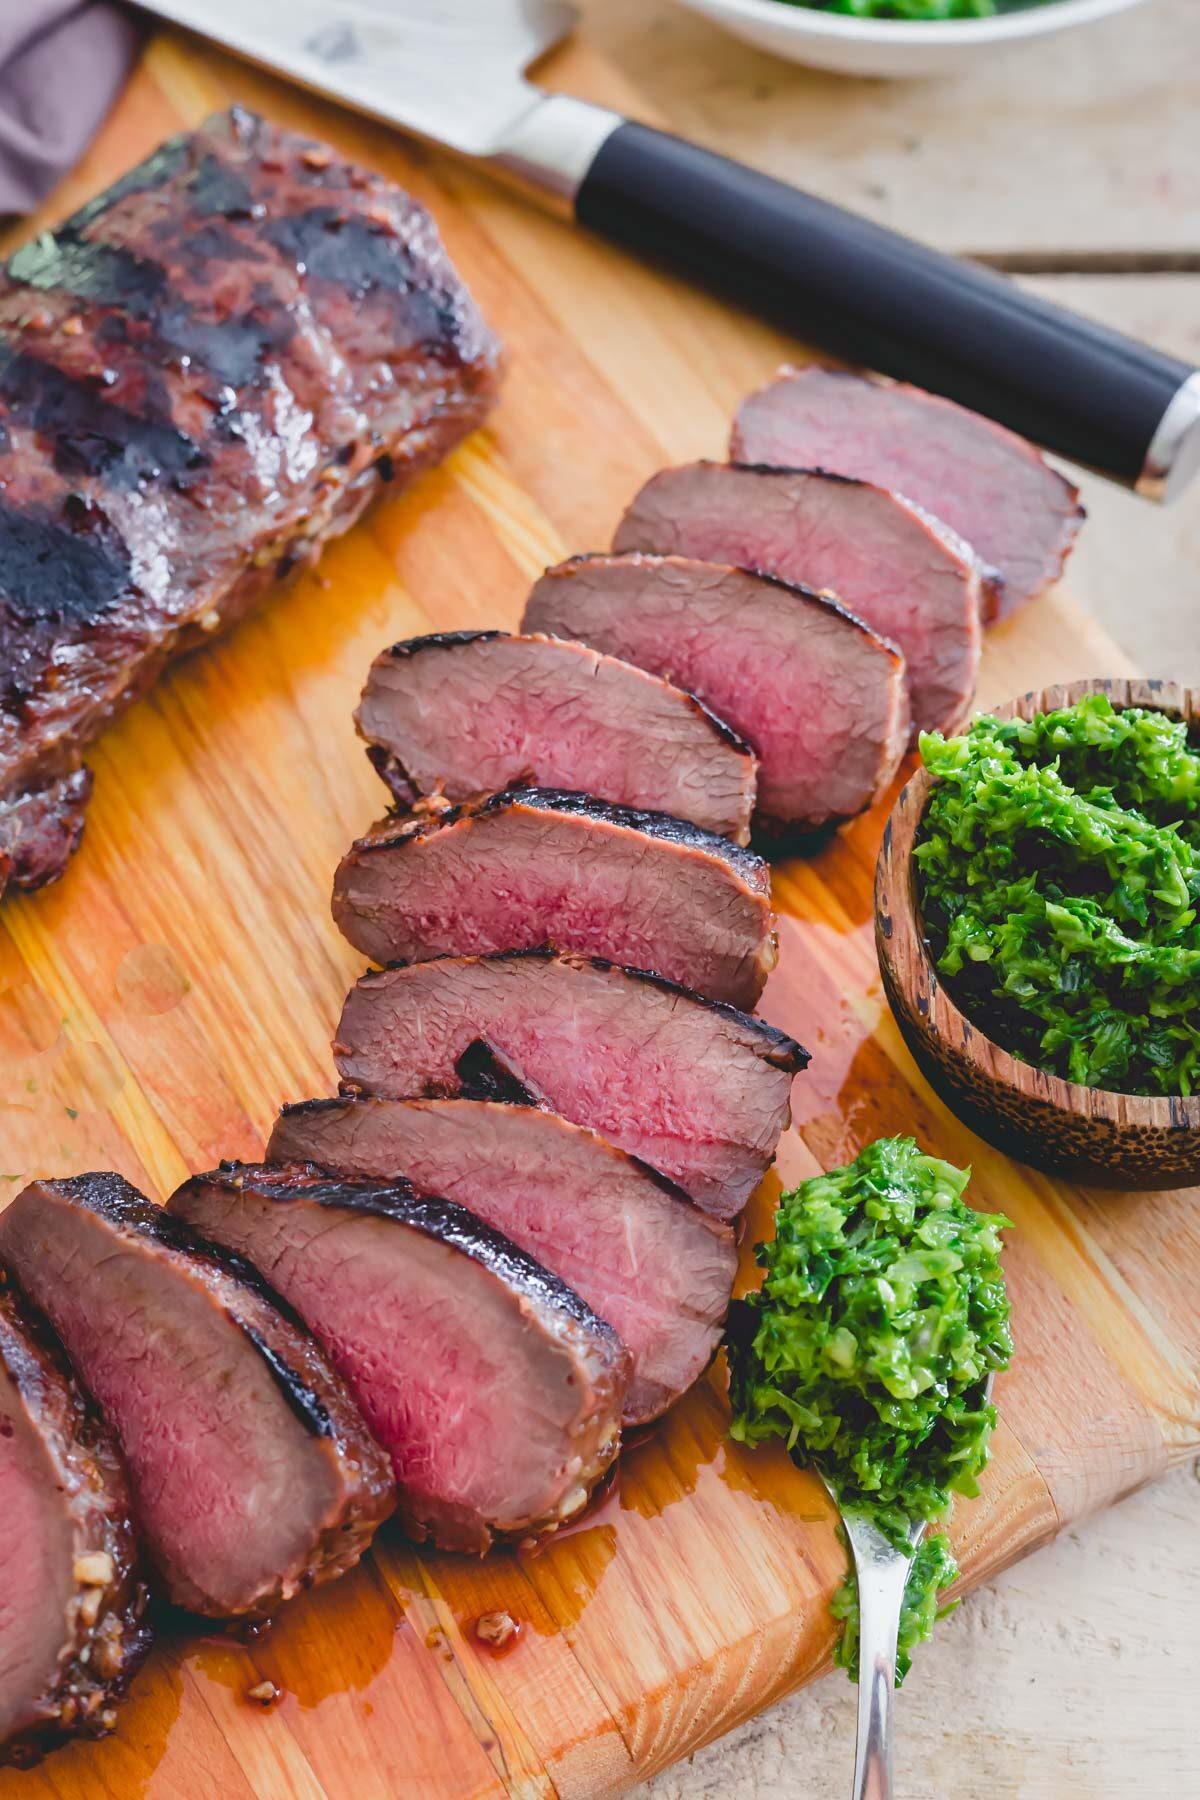 Venison backstrap recipe grilled and sliced on a cutting board with pesto on the side.